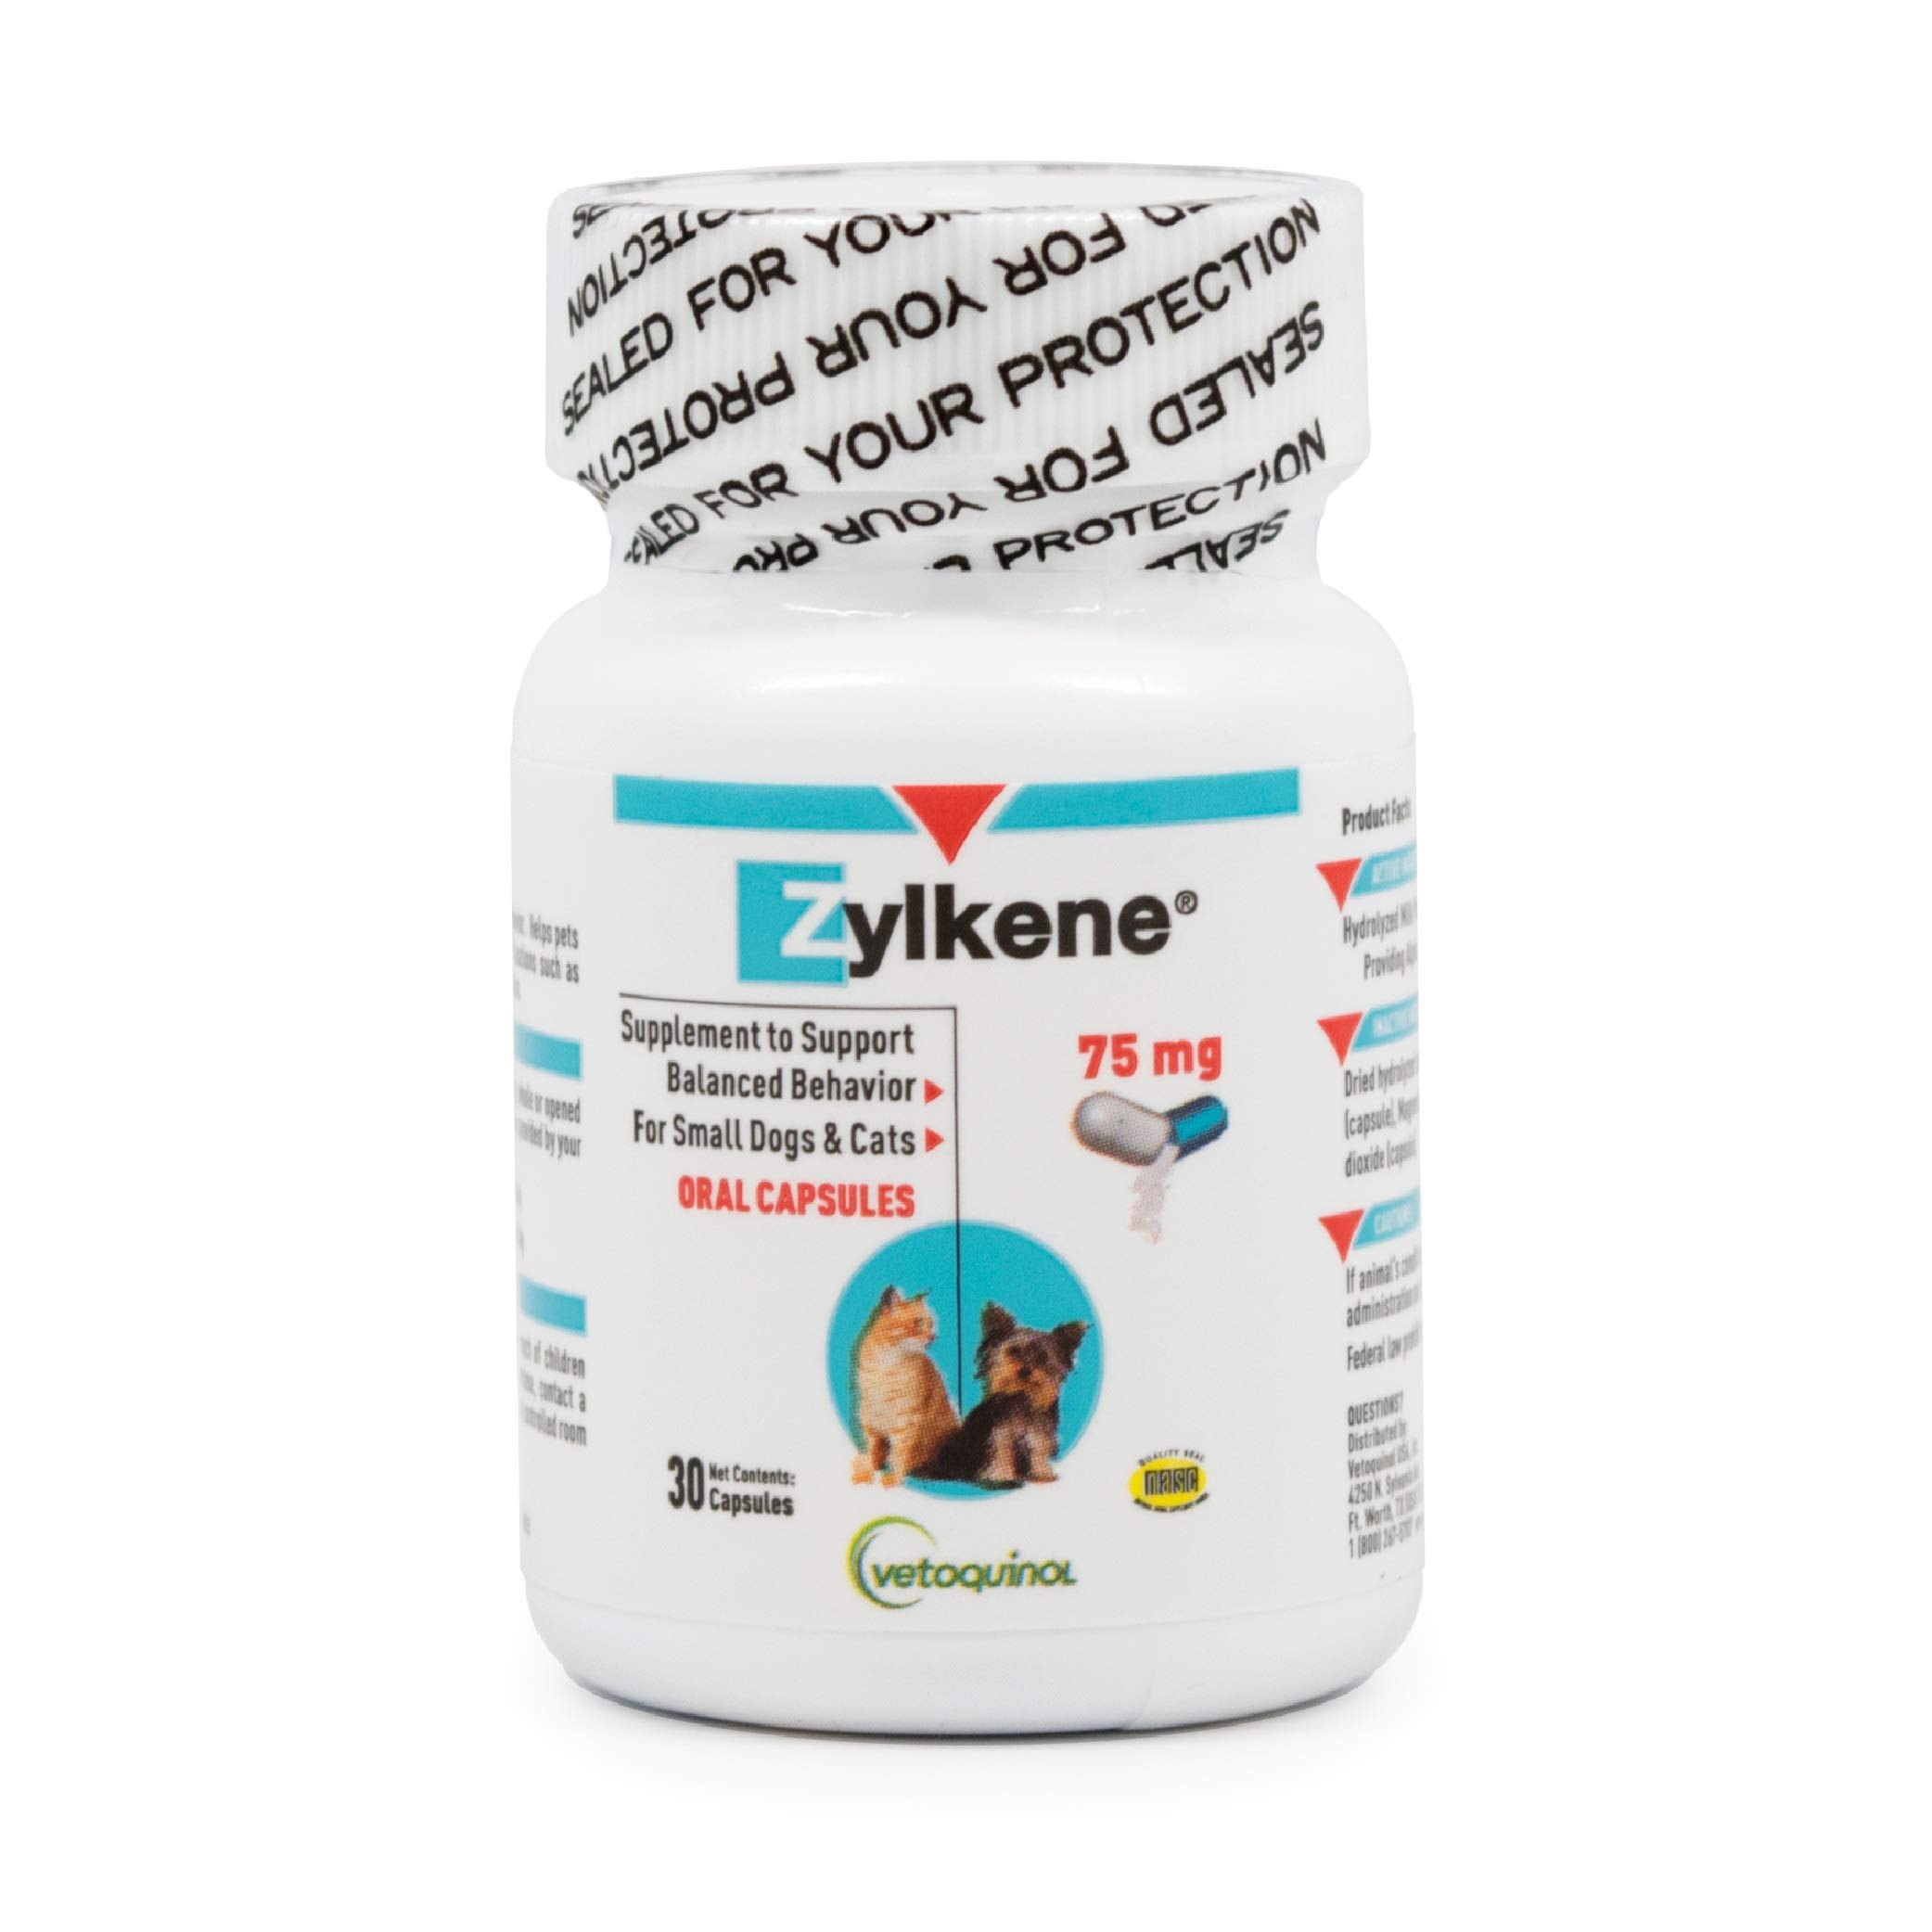 Vetoquinol Zylkene Behavior Support Capsules for Dogs & Cats, 75mg, 30ct - Calming Natural Milk Protein Supplement - Help Pets Cope with Change & Noise-Related Stress - Non-Drowsy - Lactose-Free by Vetoquinol